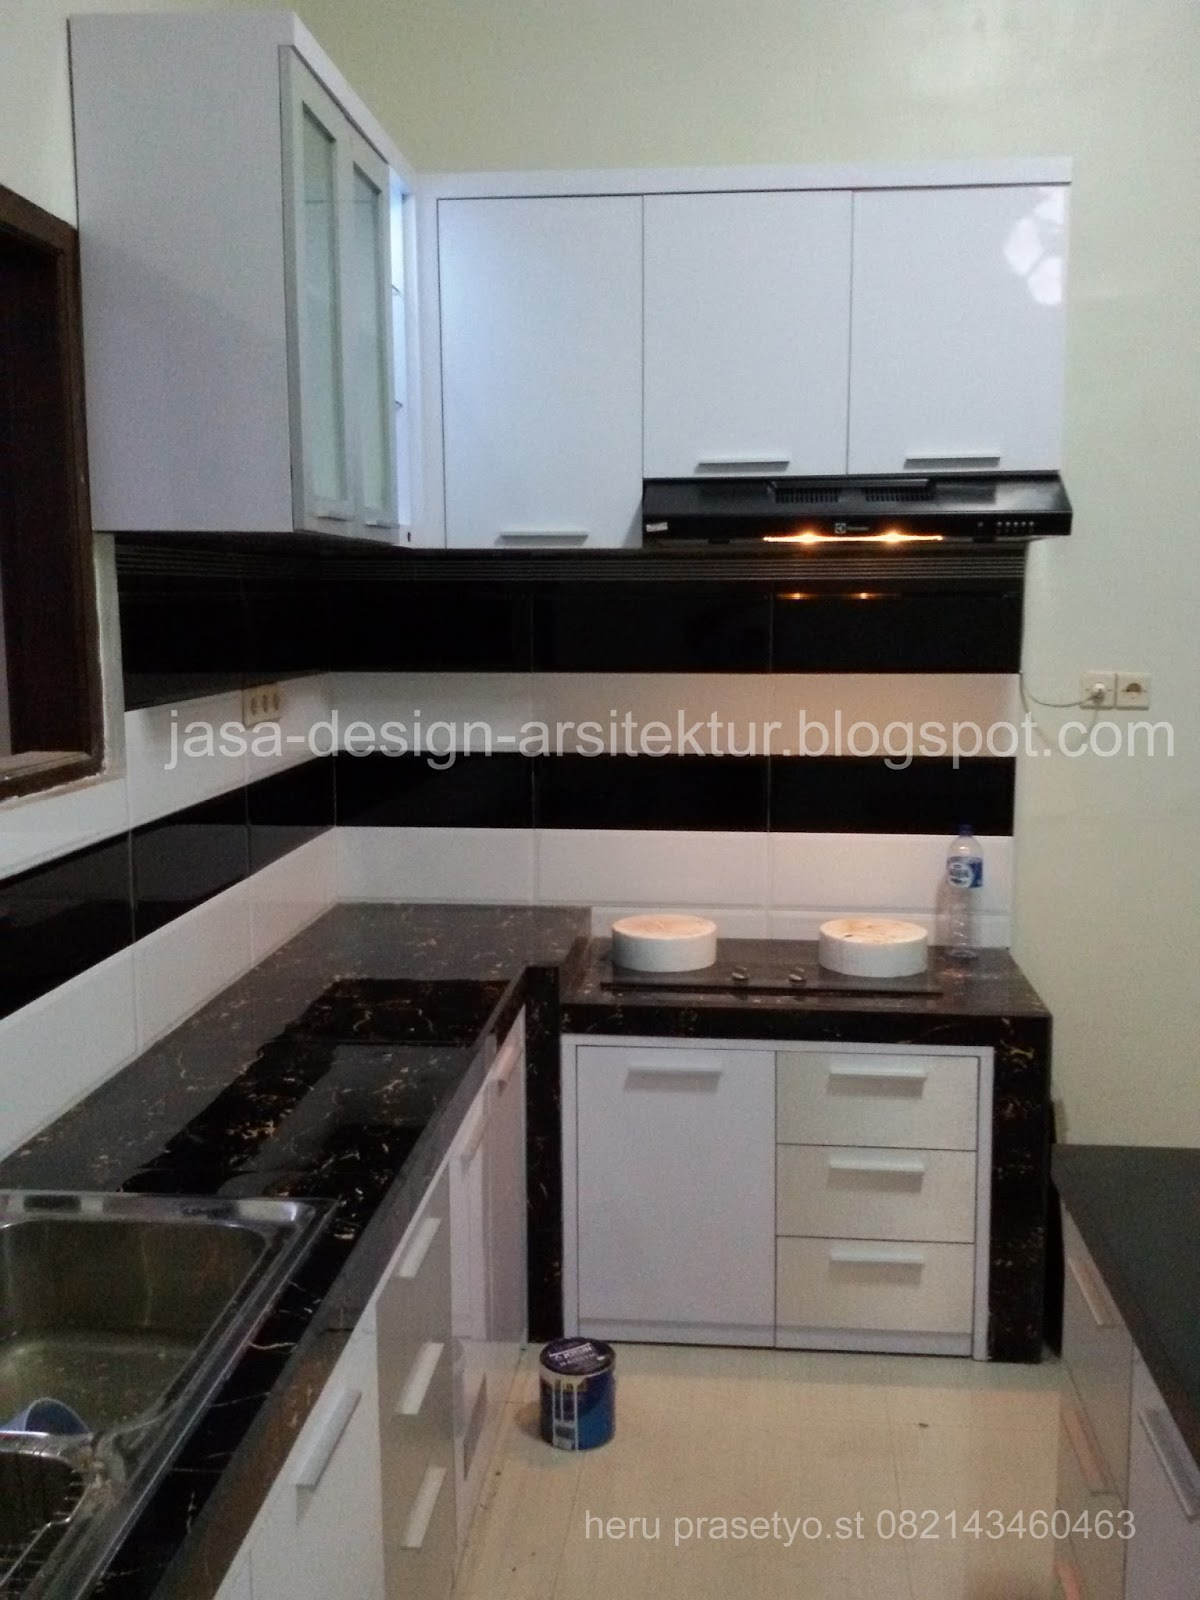 Kontraktor interior surabaya sidoarjo kitchen set warna for Kitchen set hitam putih